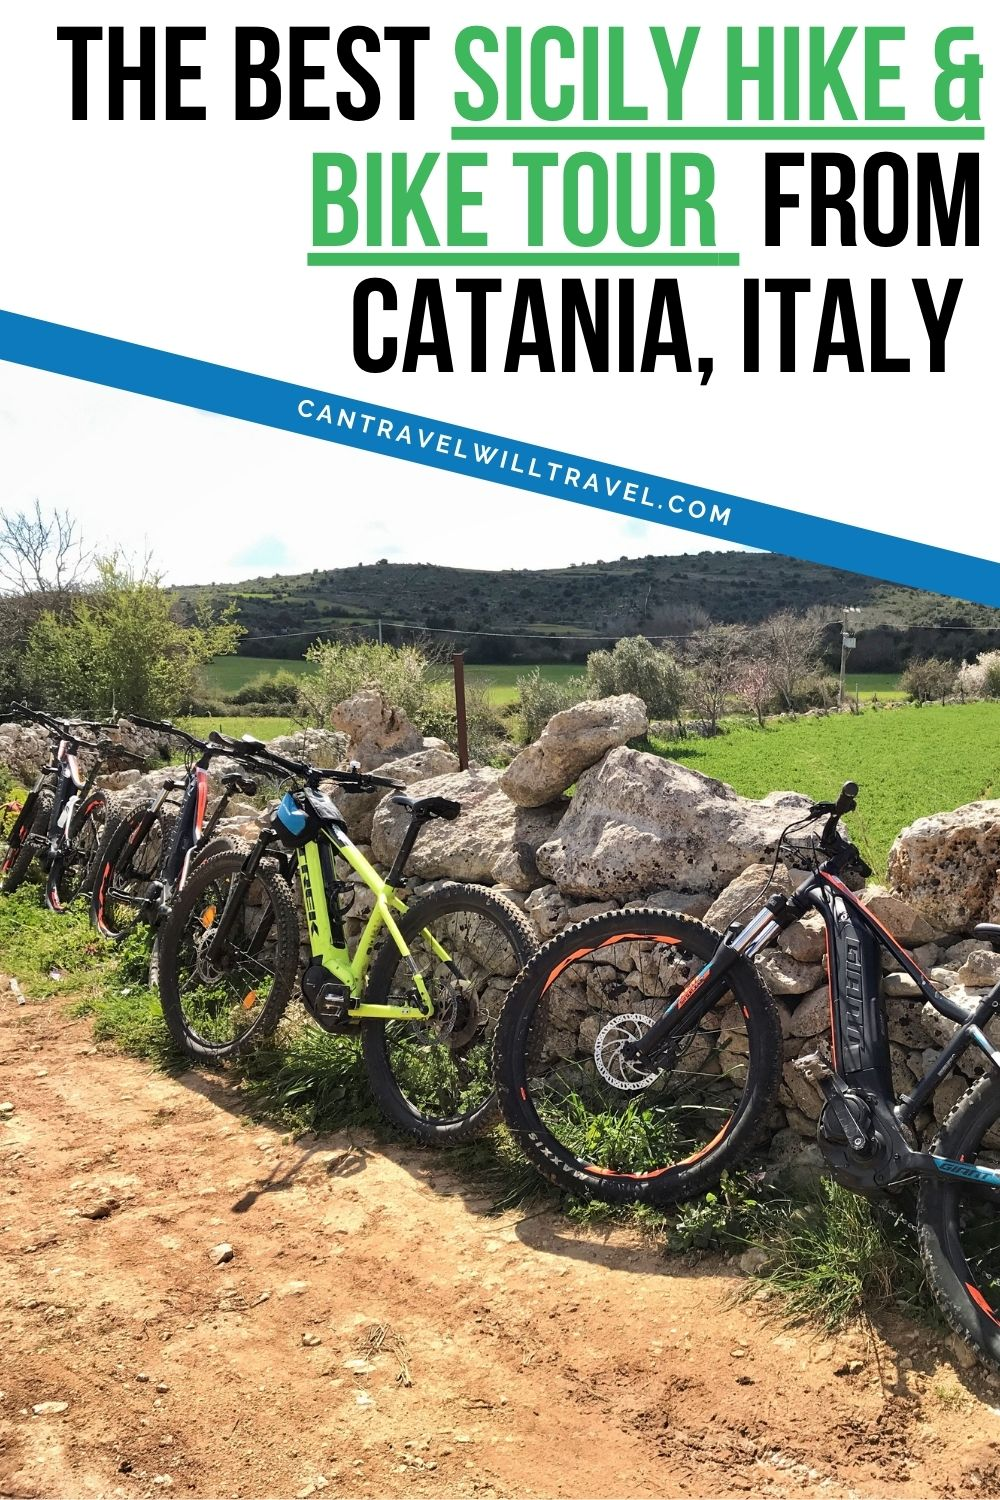 The Best Sicily Hike and Bike Tour From Catania, Italy Pin1